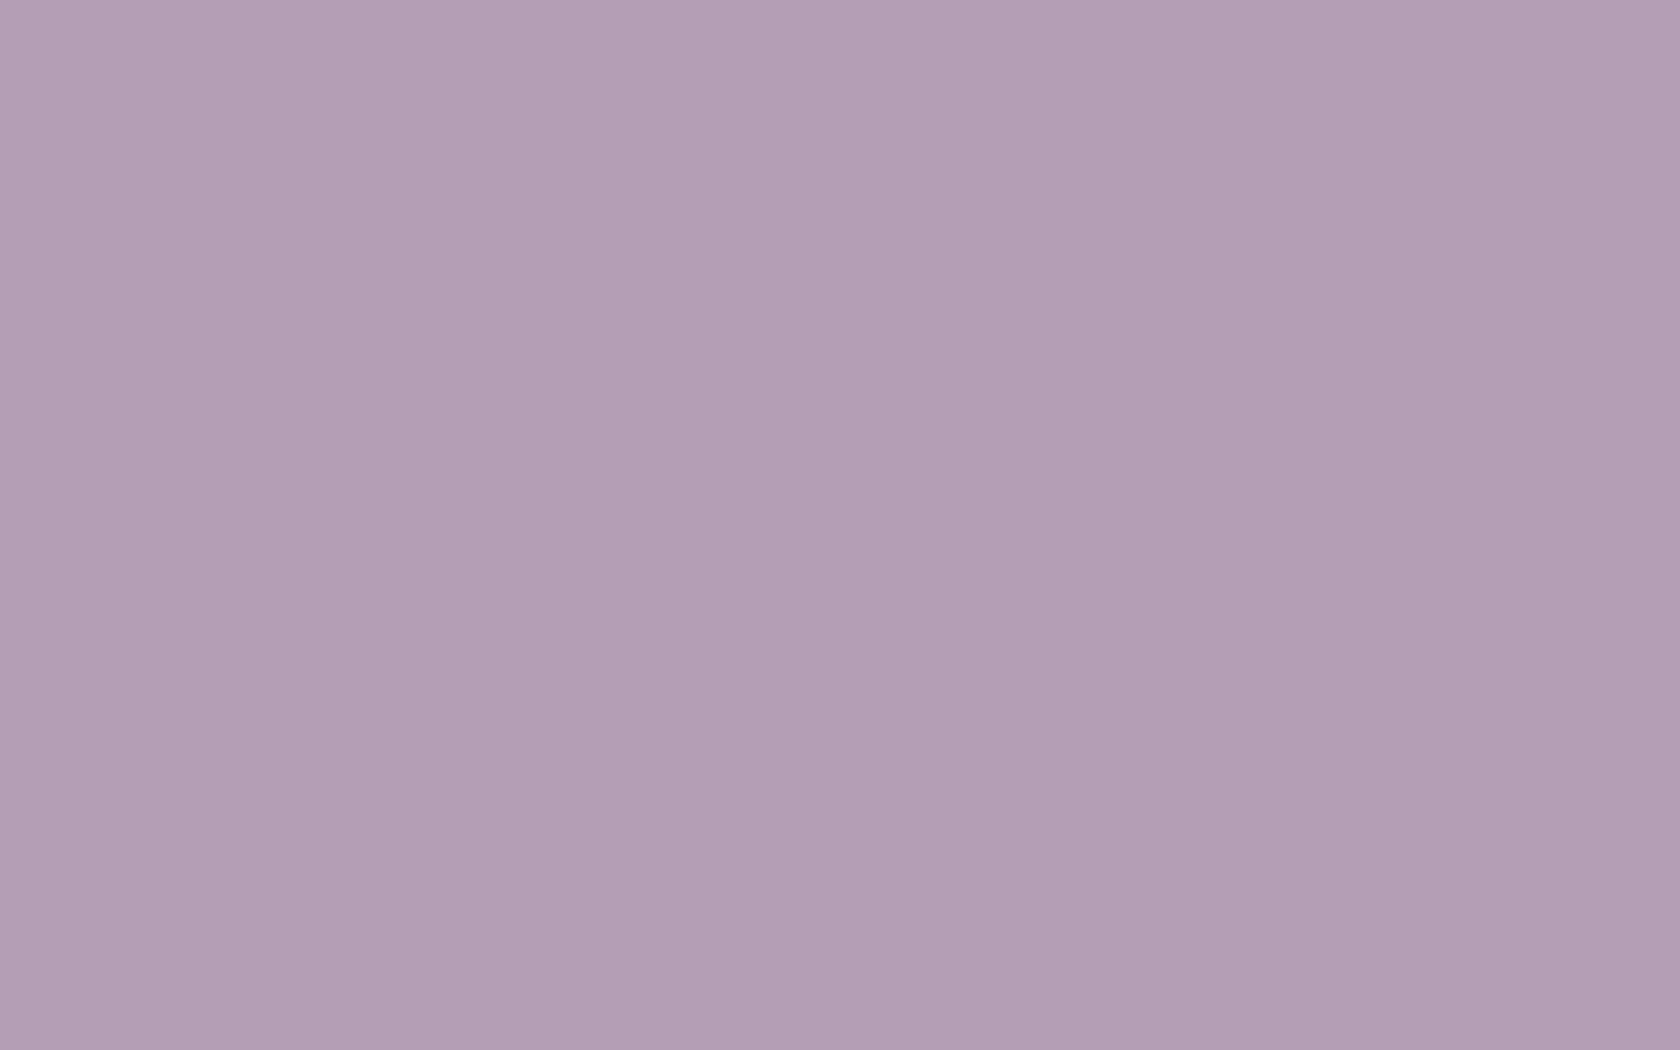 1680x1050 Pastel Purple Solid Color Background